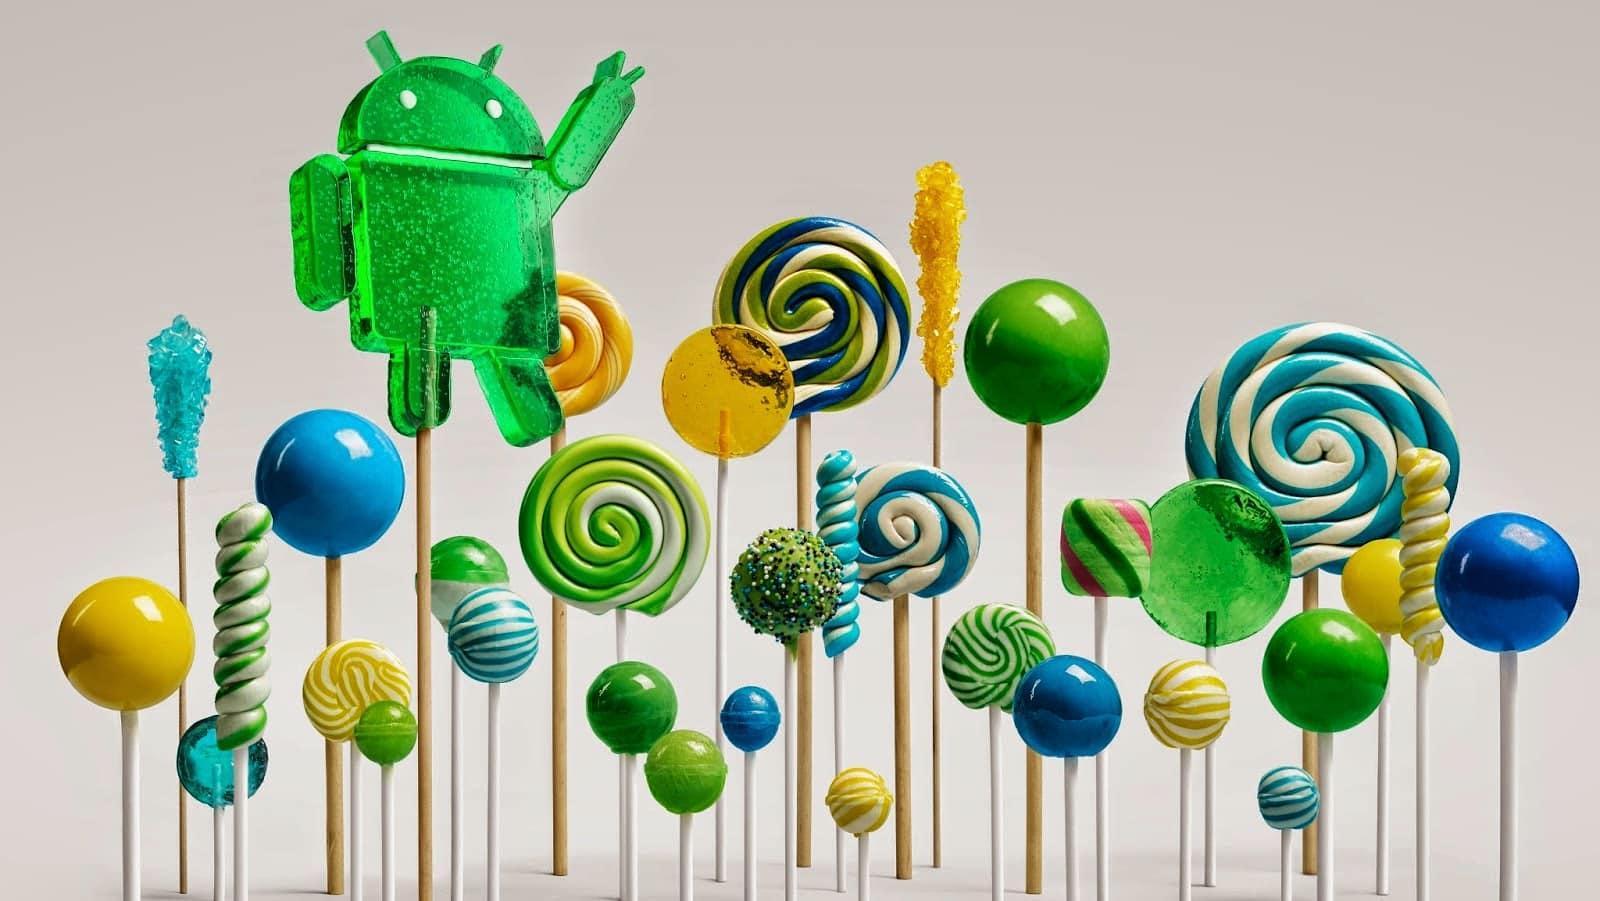 Android 5.0 Lollipop featured image. Credit to Google official blogspot